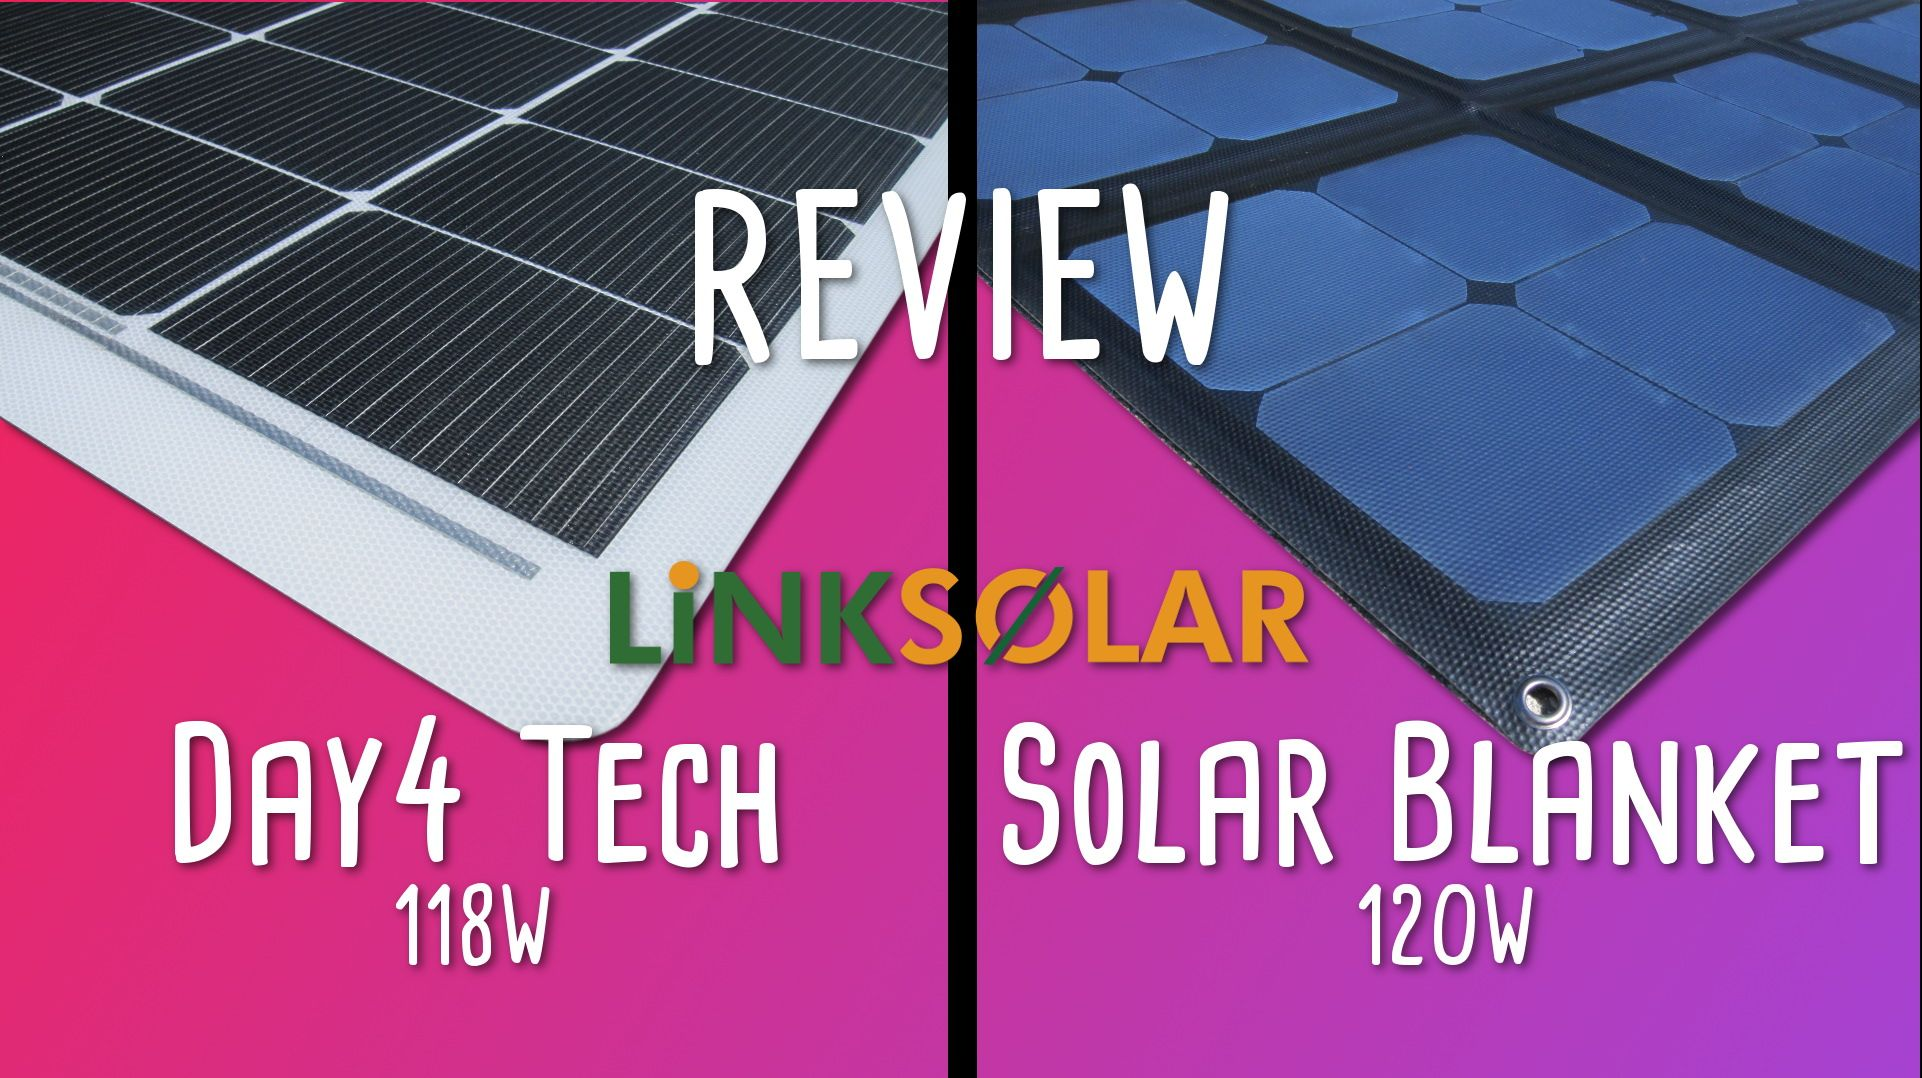 This Is A Short Review Of Two Brand New Flexible Solar Panels The Day4 Tech Panel Looks Very Similar To The Current F Flexible Solar Panels Solar Panels Solar